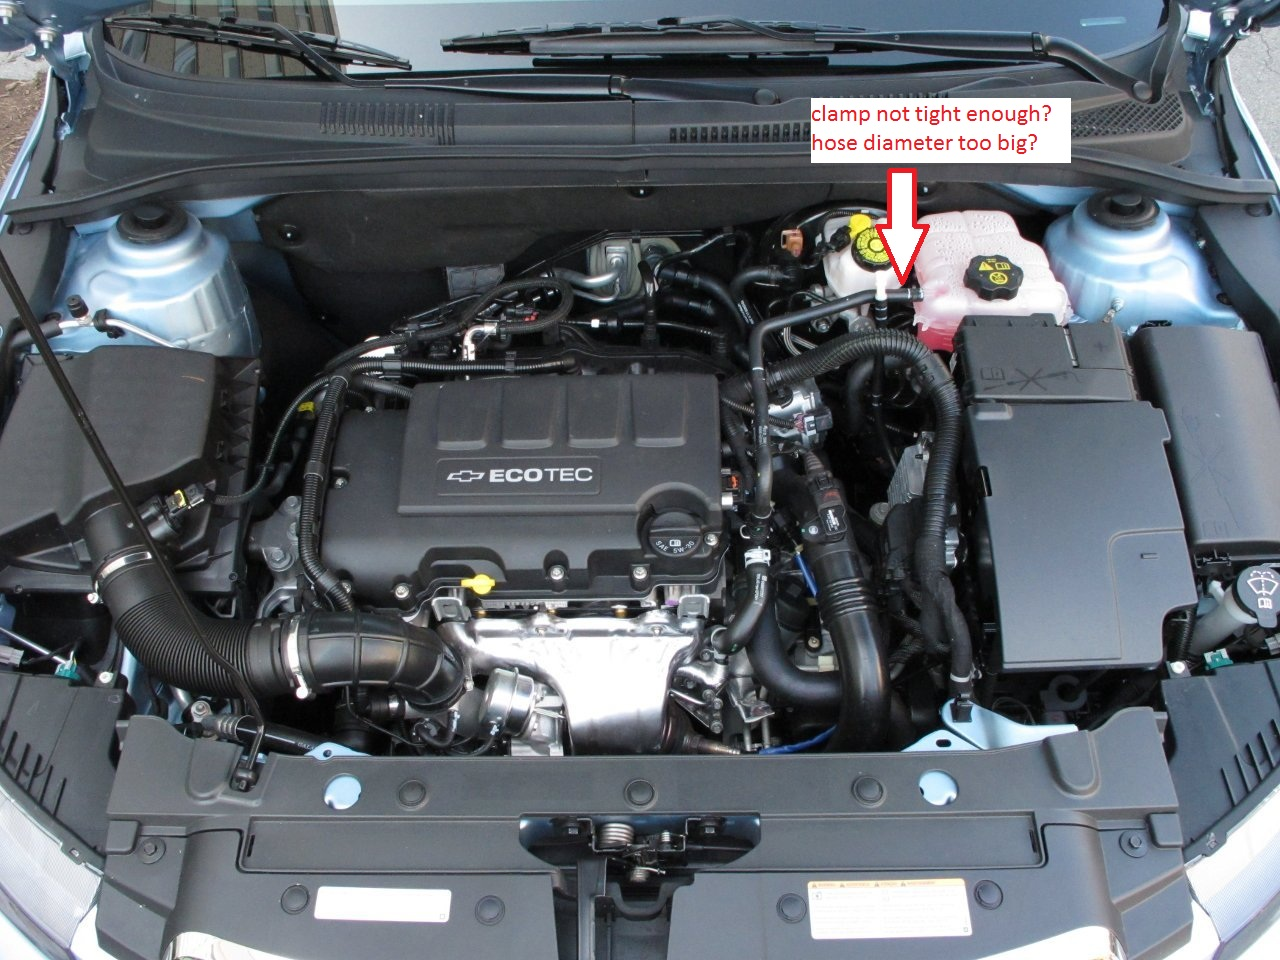 2013 Chevy Cruze Fuse Diagram Trusted Wiring Engine Compartment Database Library Alternator